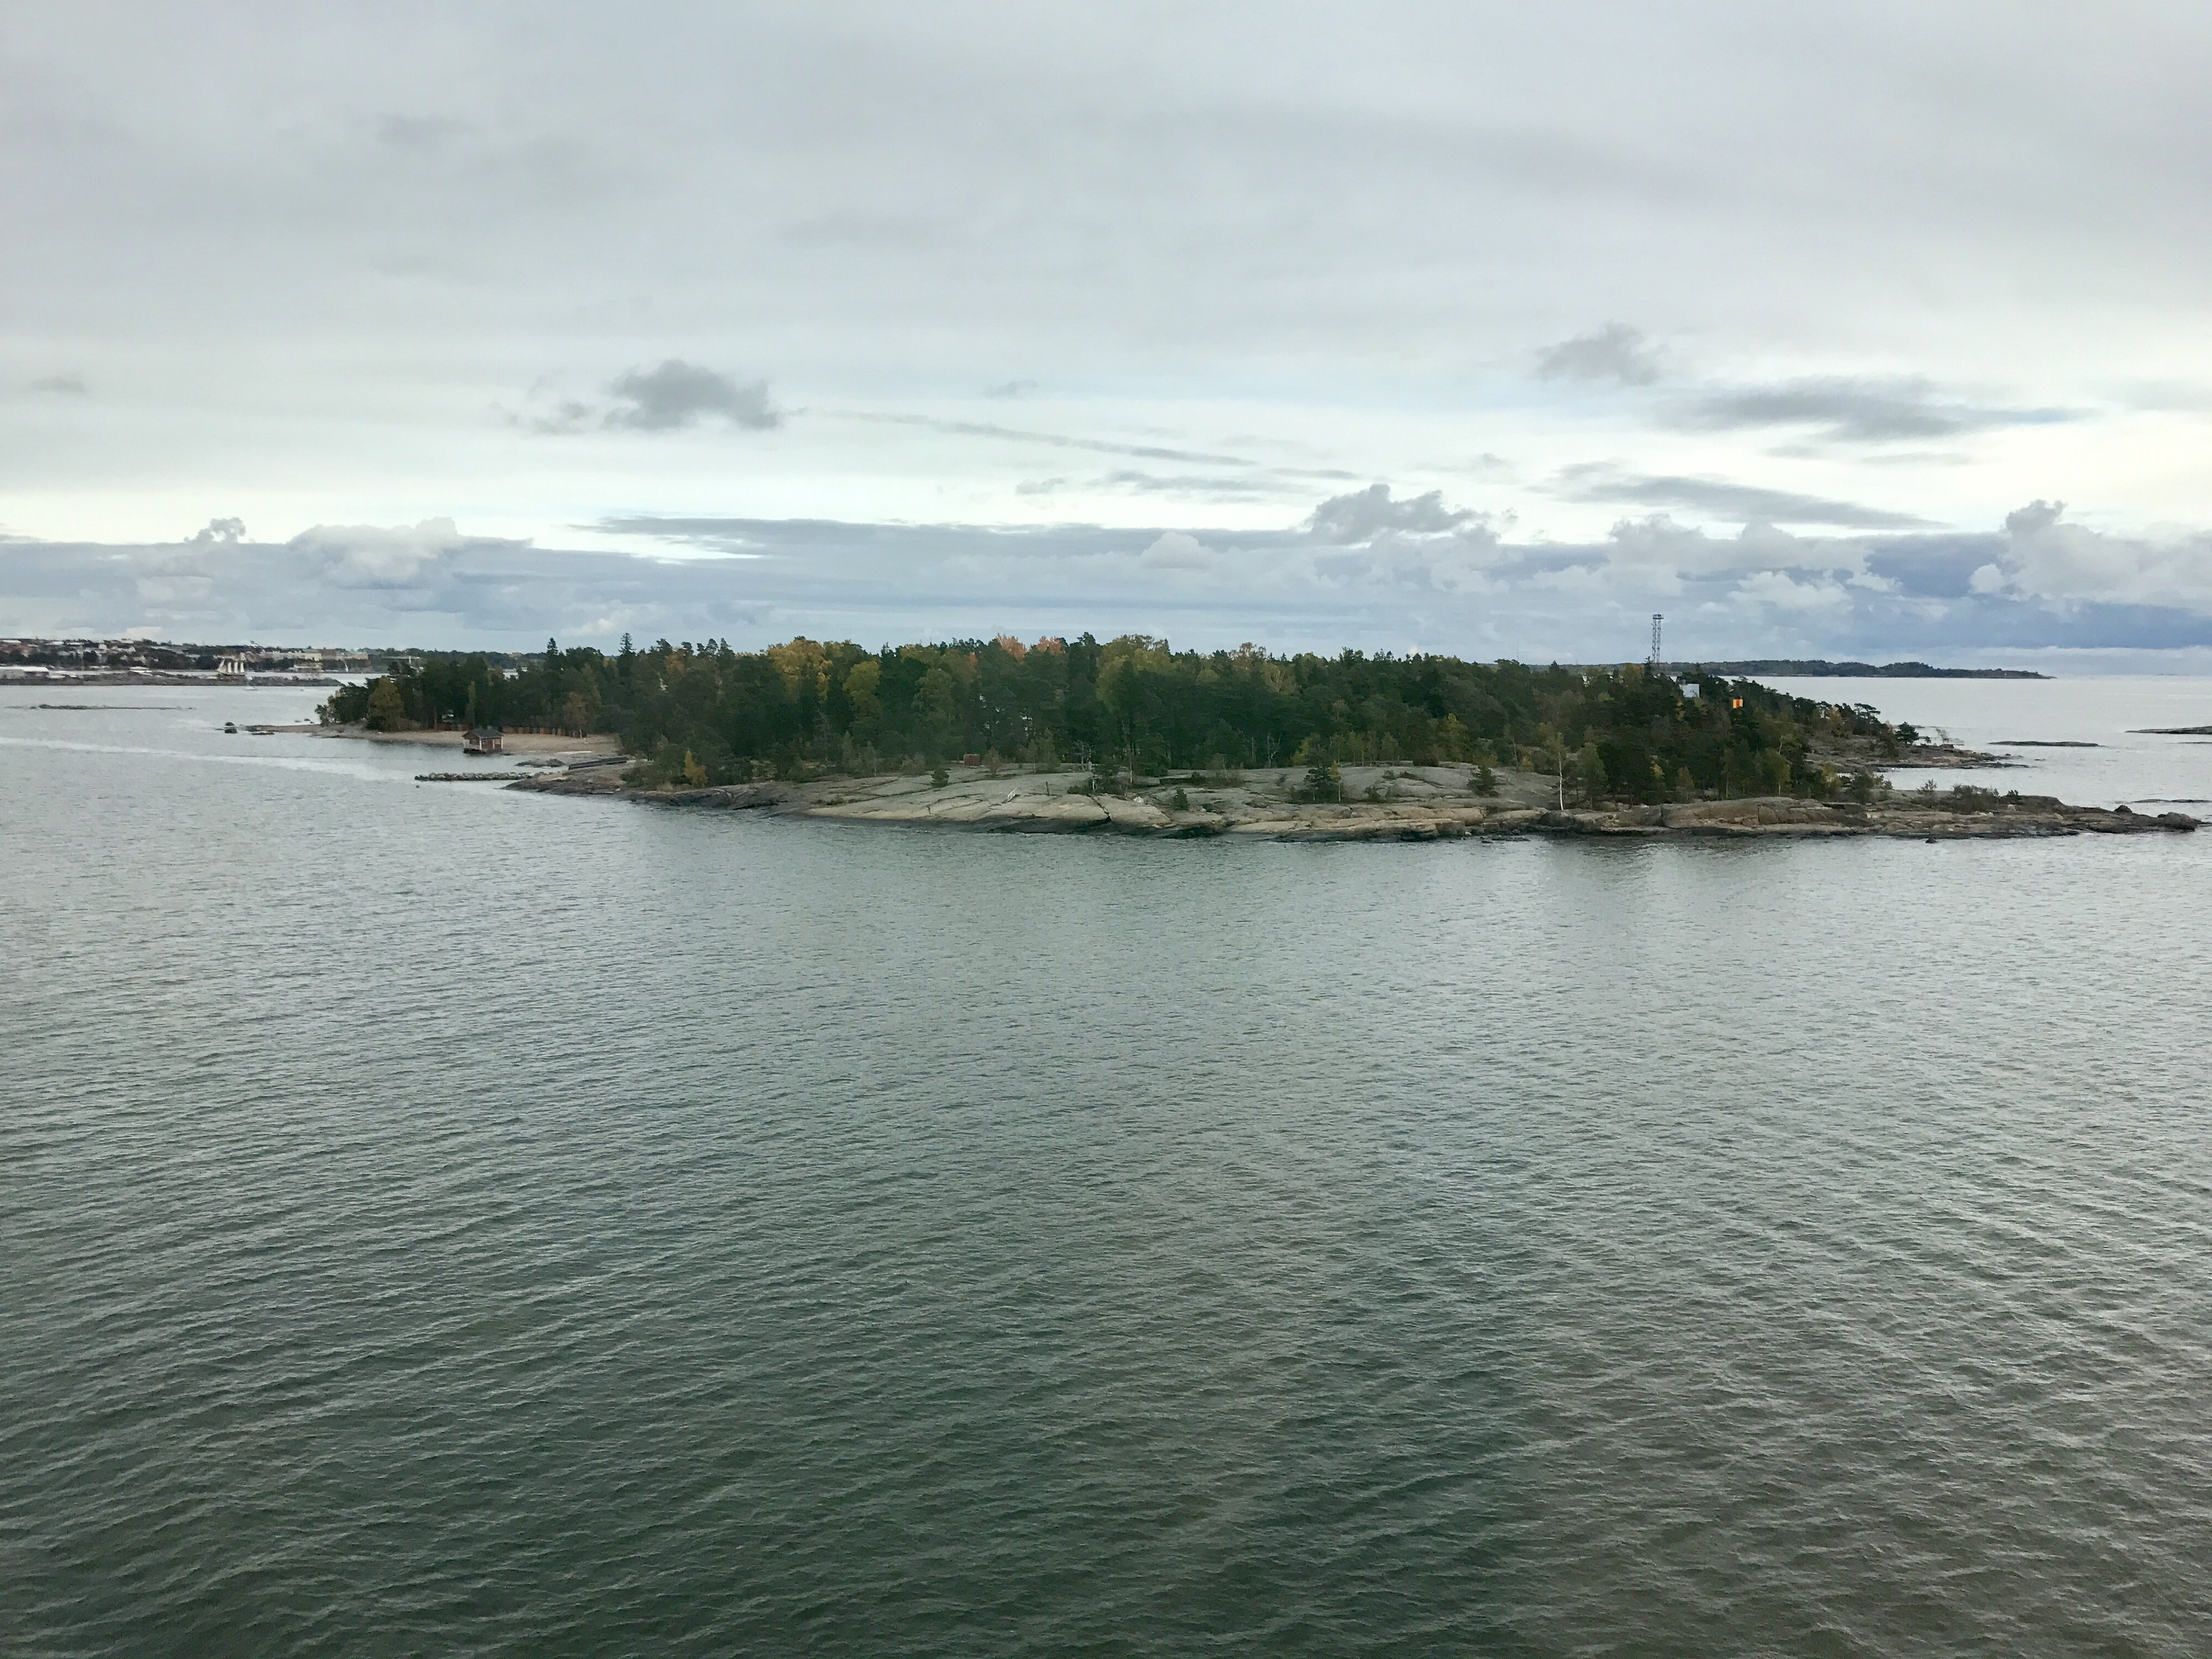 Helsinki Ferry Ride to Tallinn Scandinavian